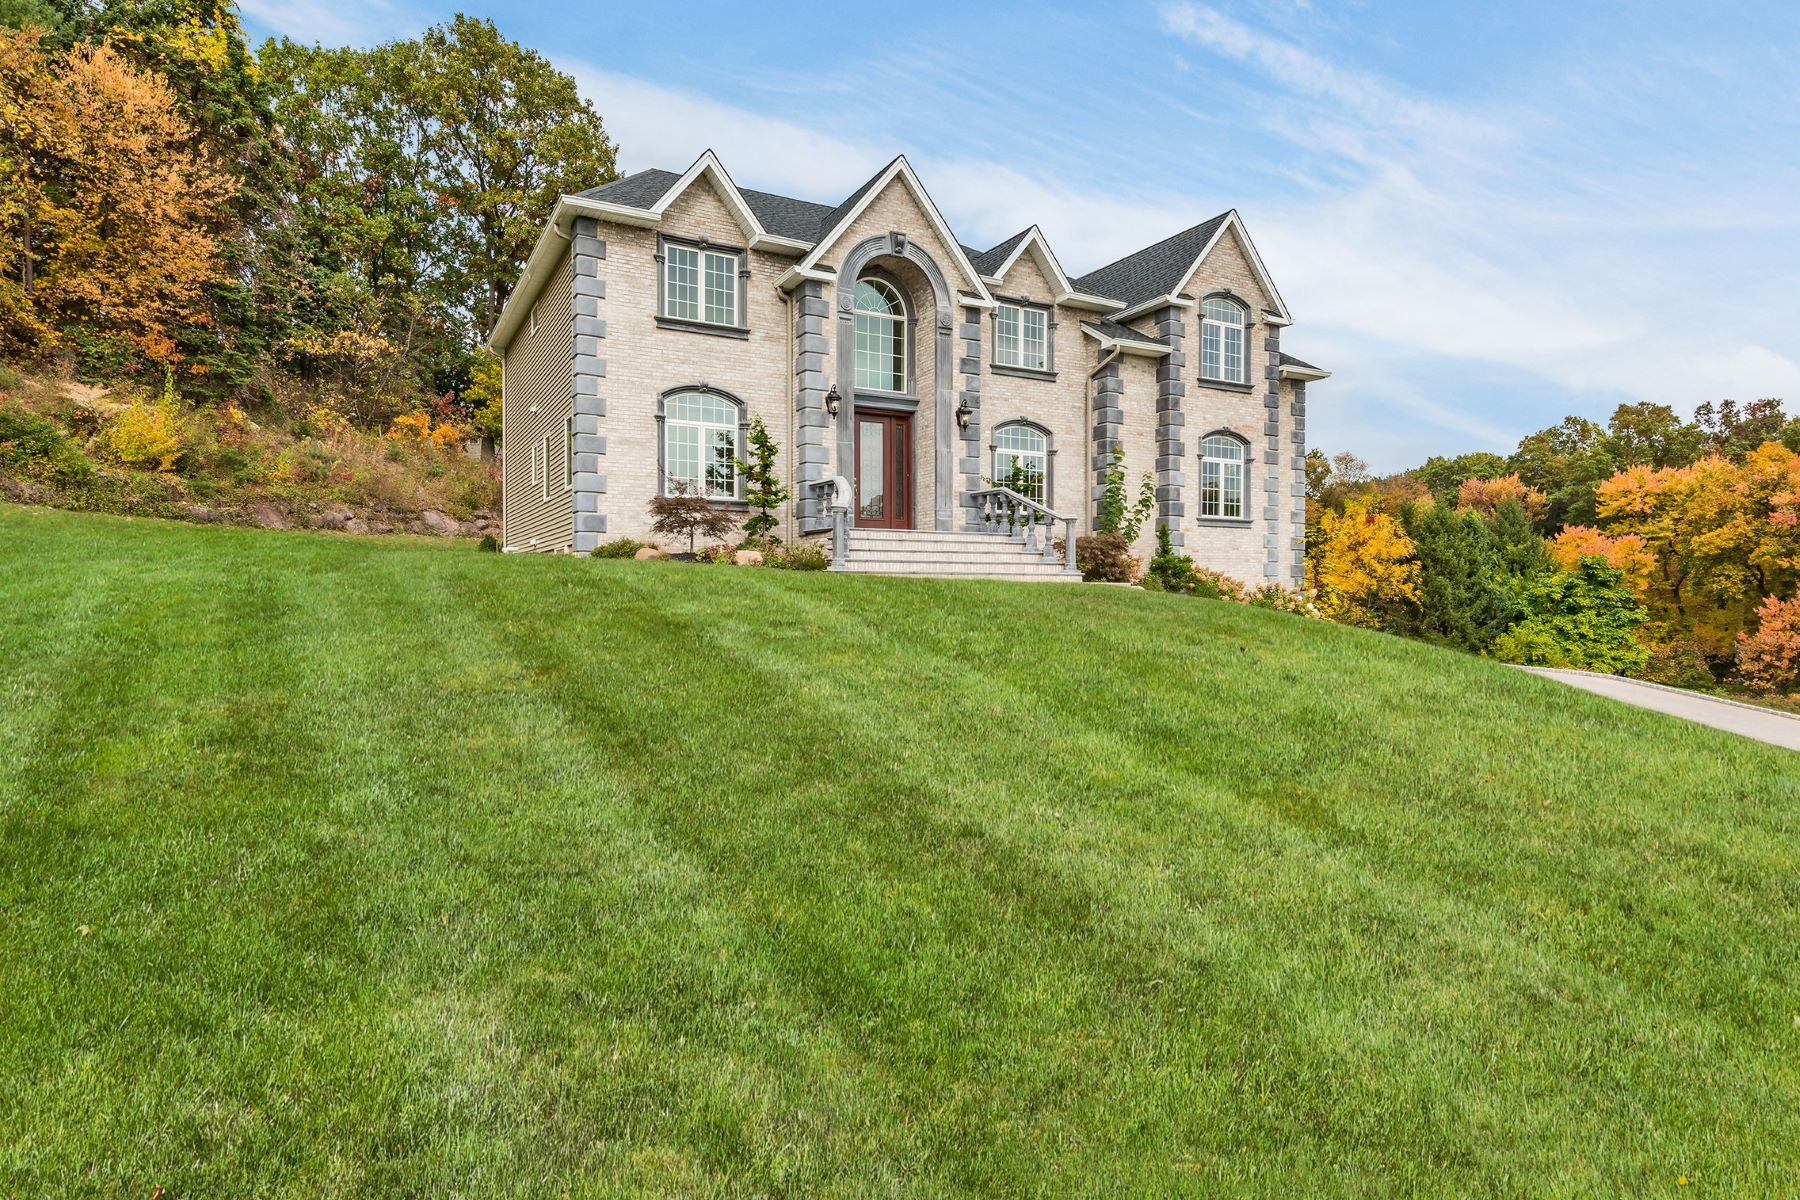 Single Family Home for Sale at Distinctively Designed Masterpiece 39 Renfrew Rd. New City, New York, 10956 United States